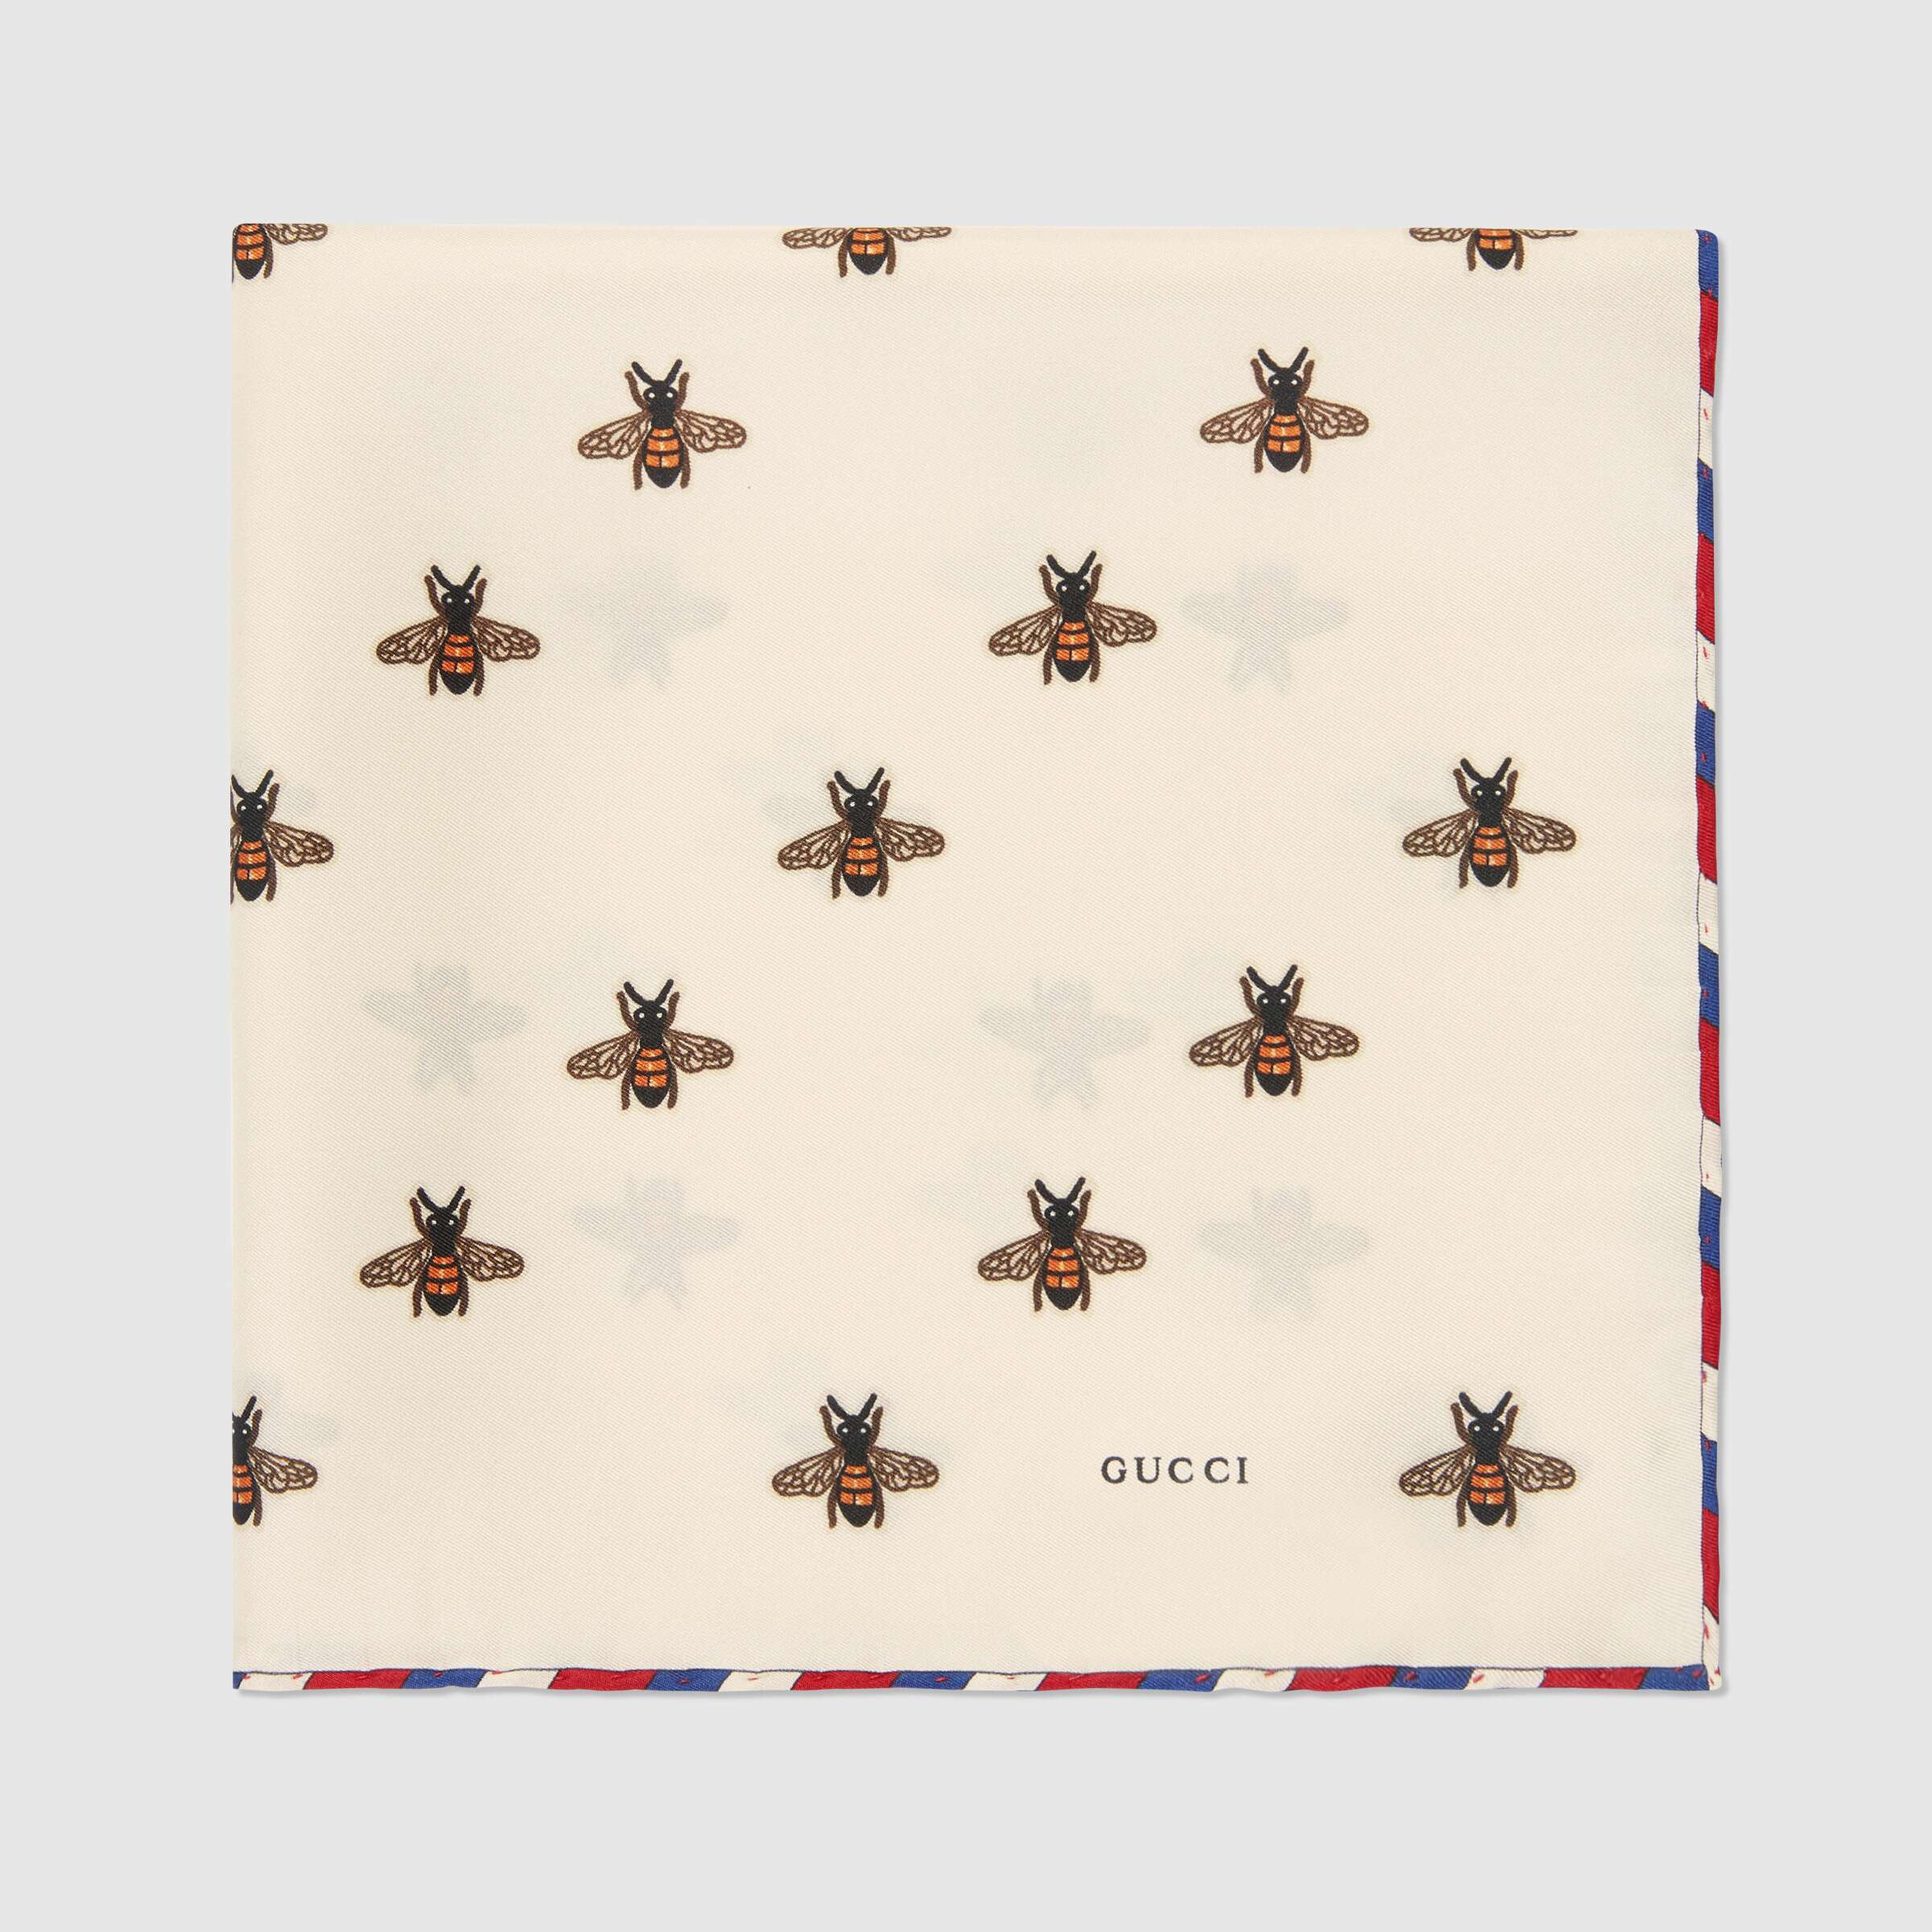 유럽직배송 구찌 GUCCI Bees print silk pocket square 4979104G0019200